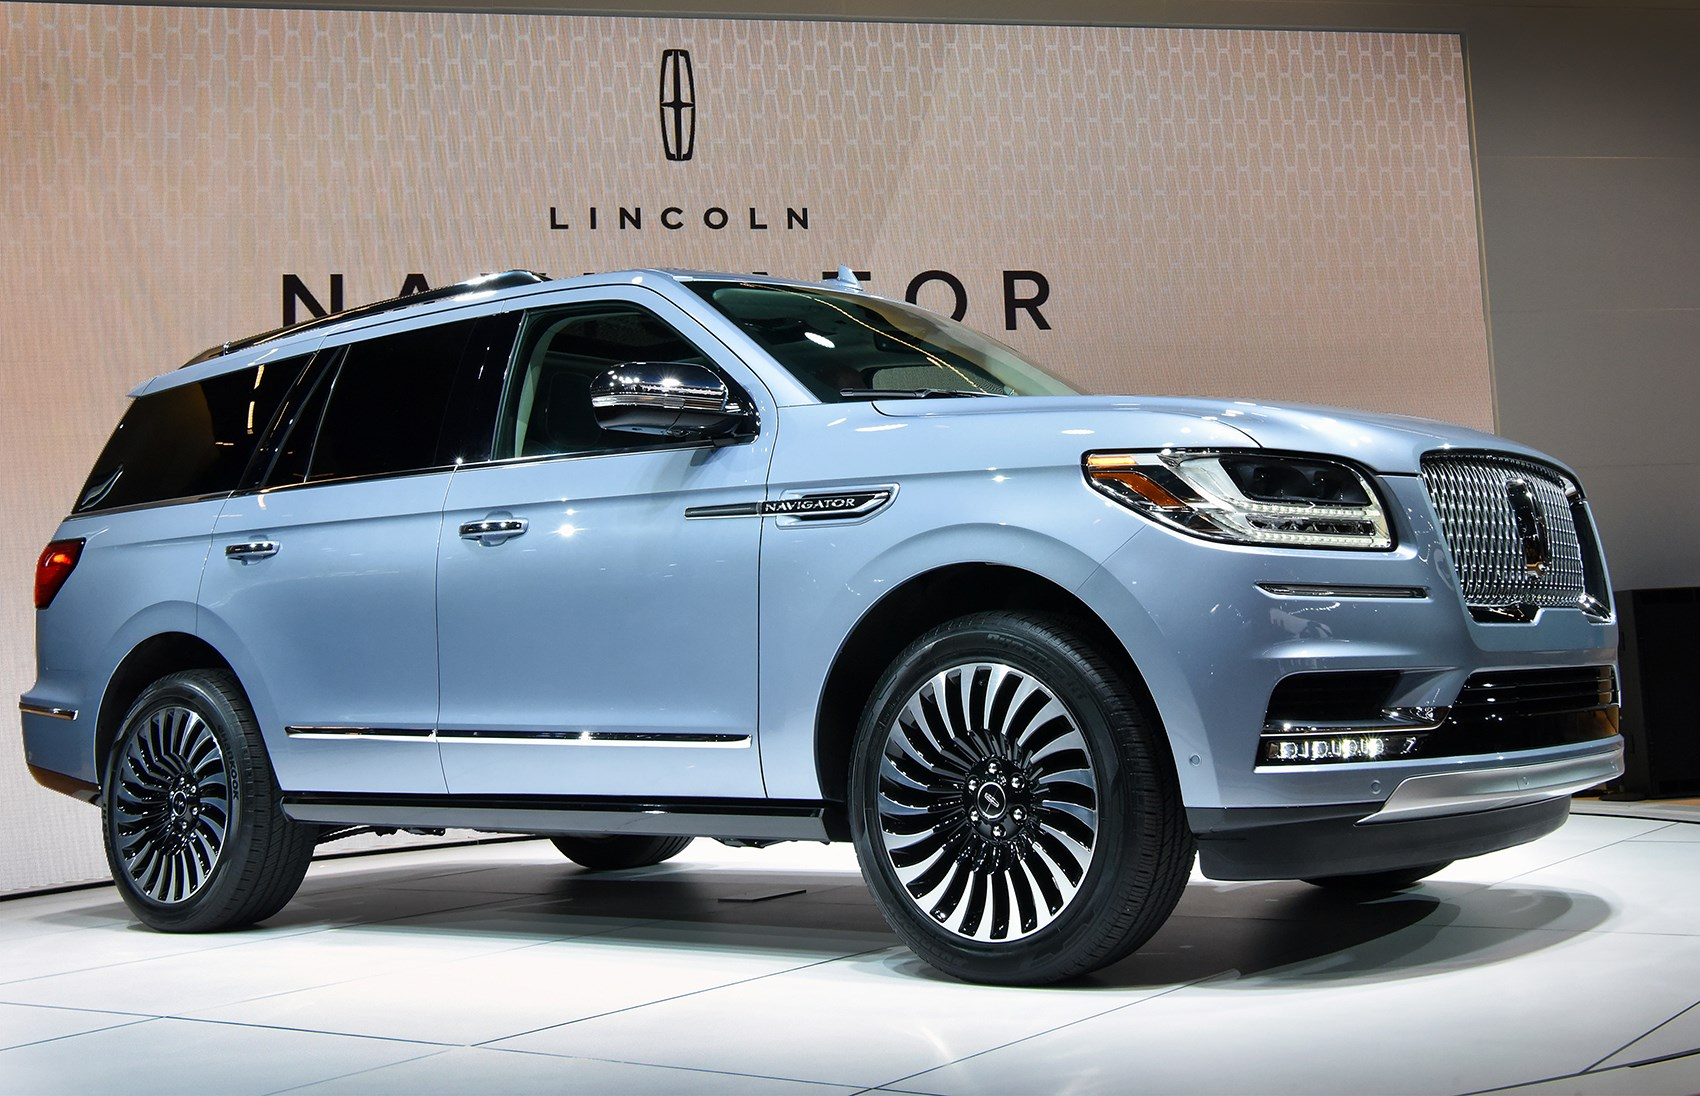 Luxury Suvs Vehicle: New Lincoln Navigator: Maxing Out The Luxury SUV Sector